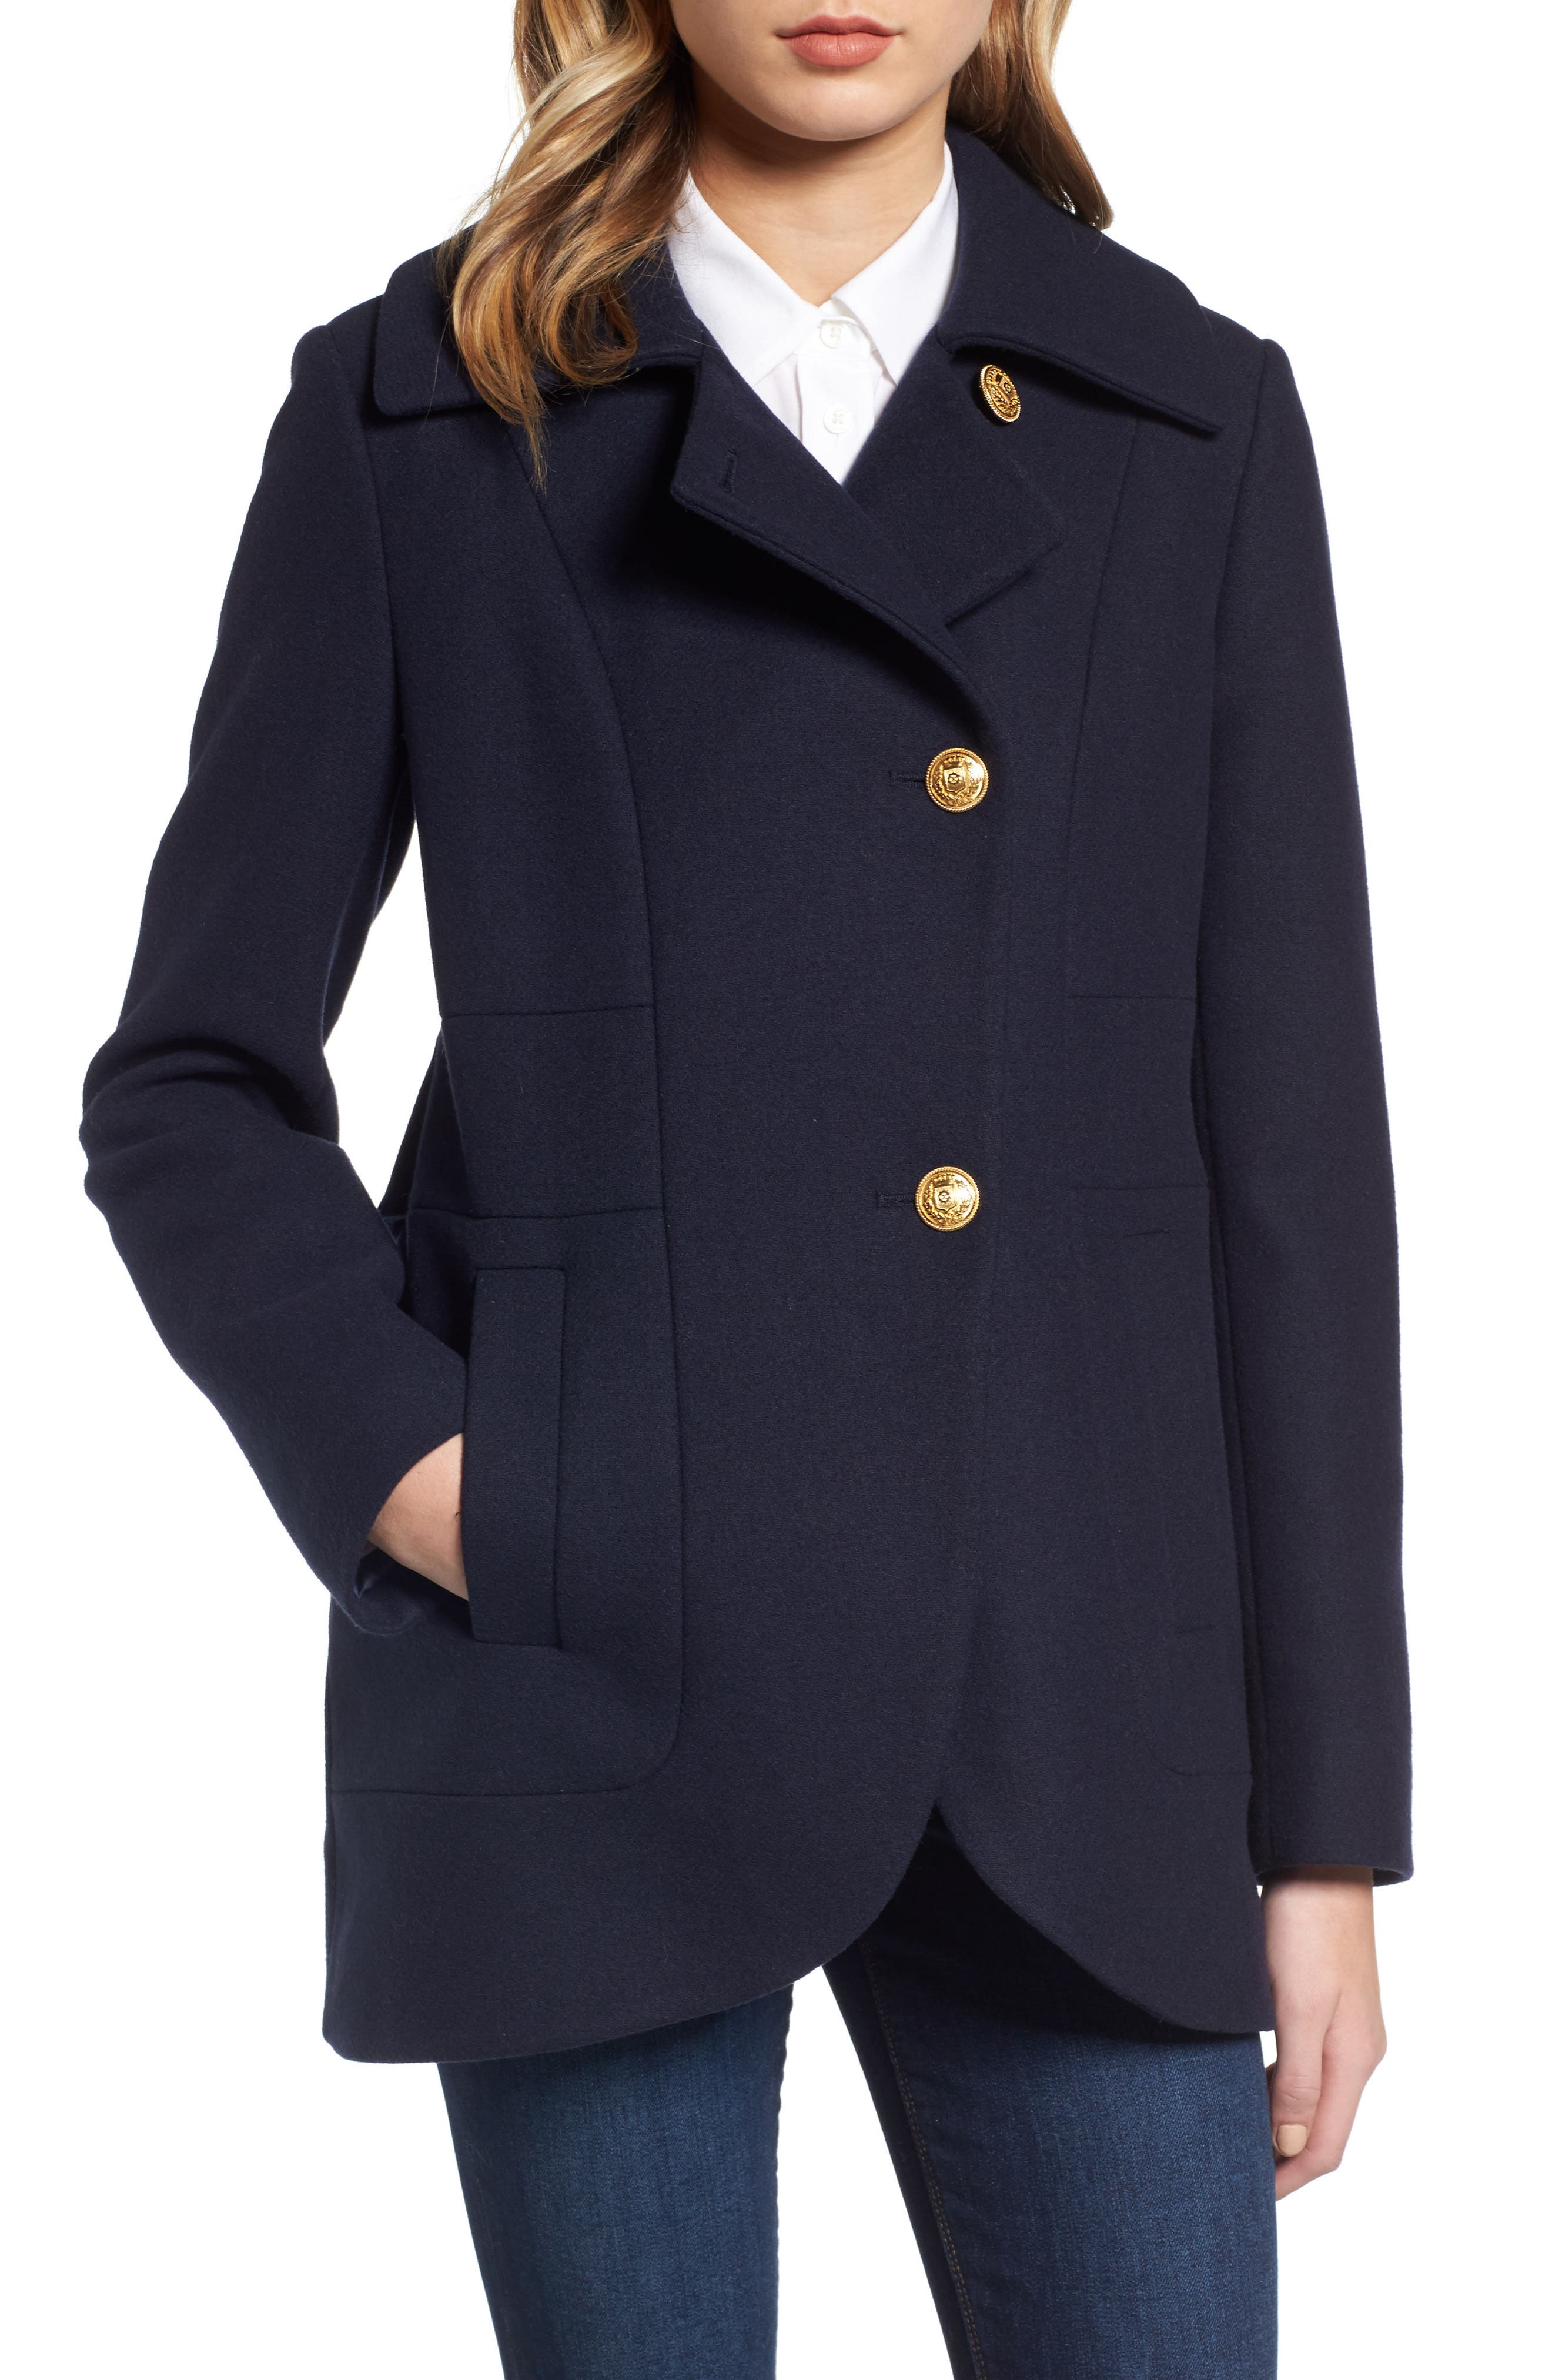 Main Image - French Connection Back Belt Wool Blend Peacoat